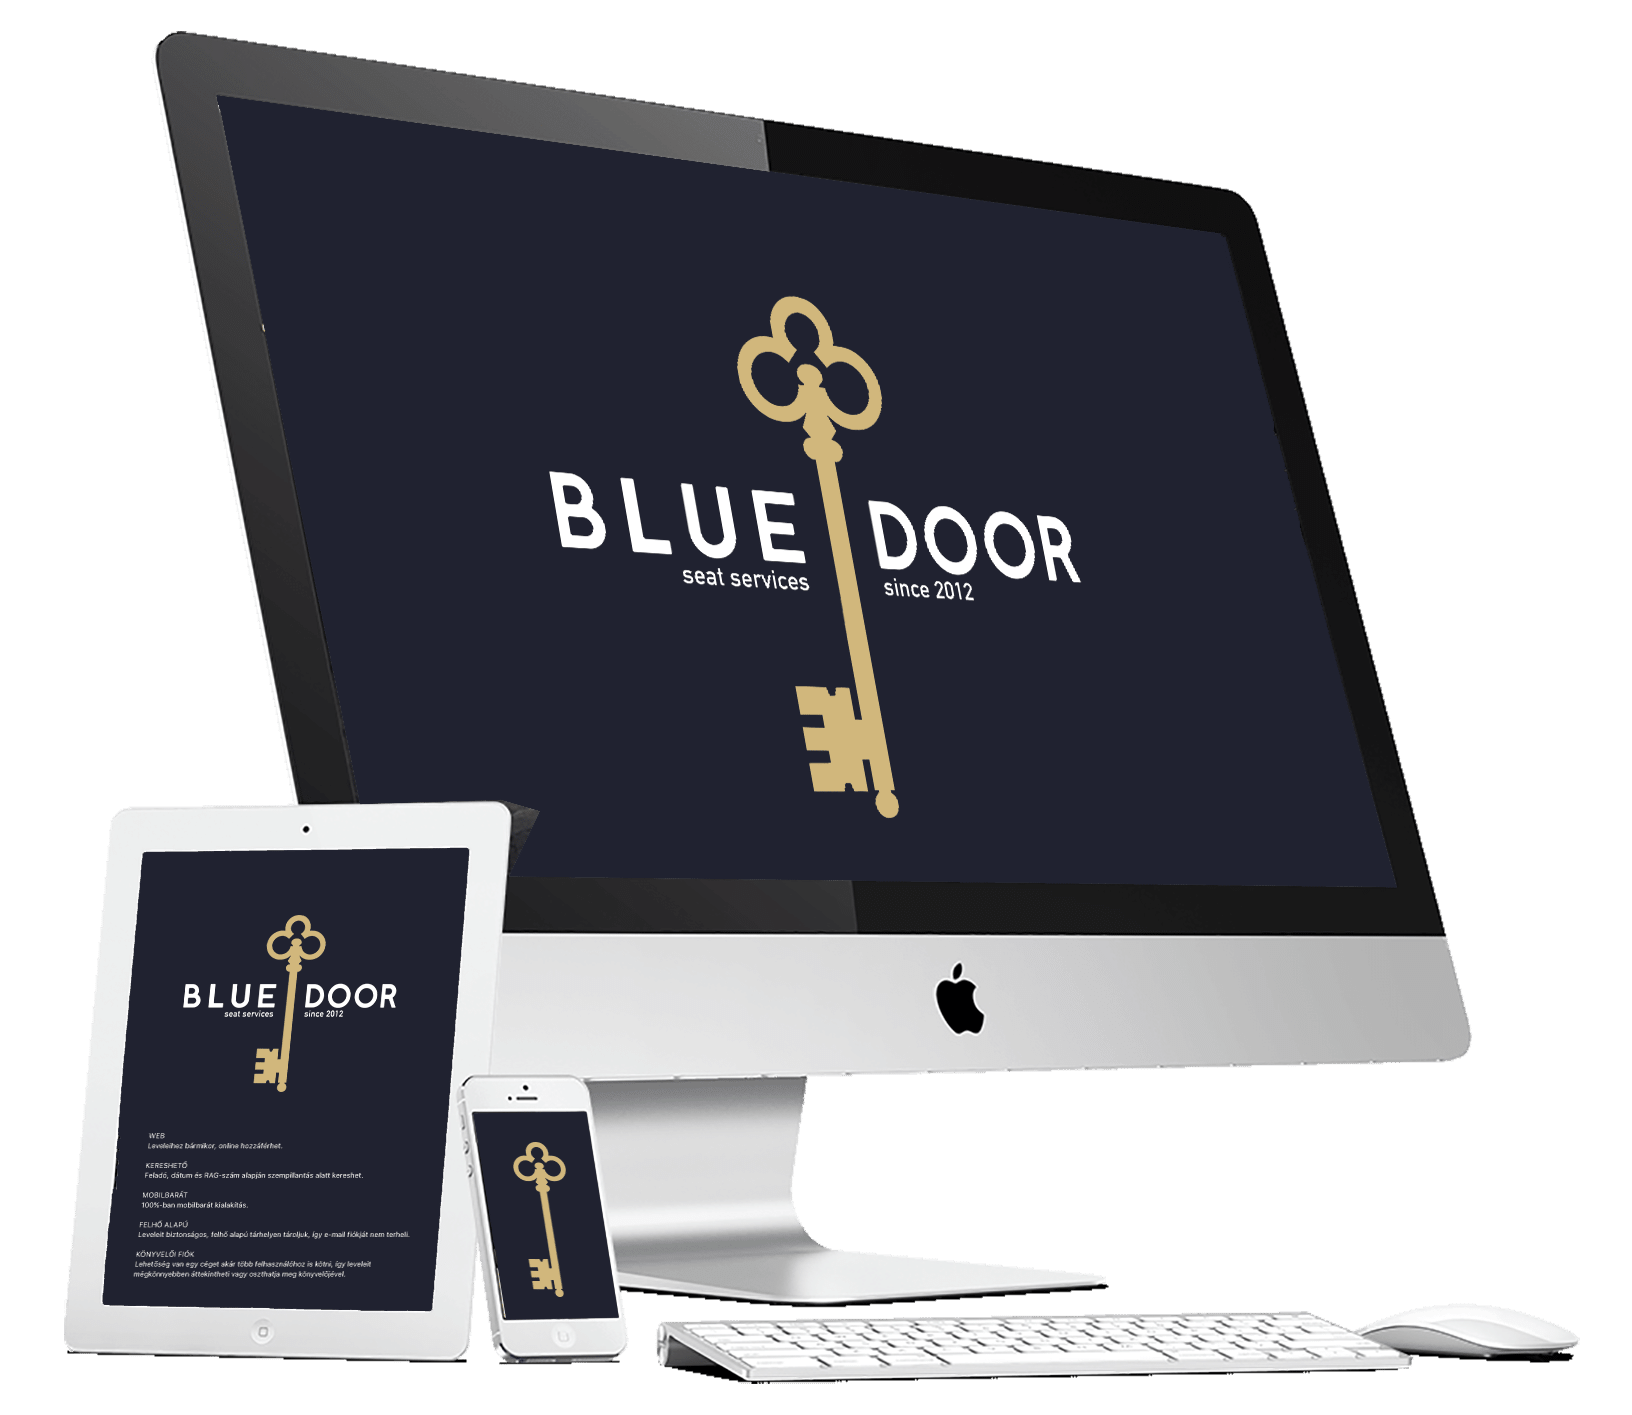 //www.bluedoor.hu/wp-tartalom/uploads/2018/05/macbook.png